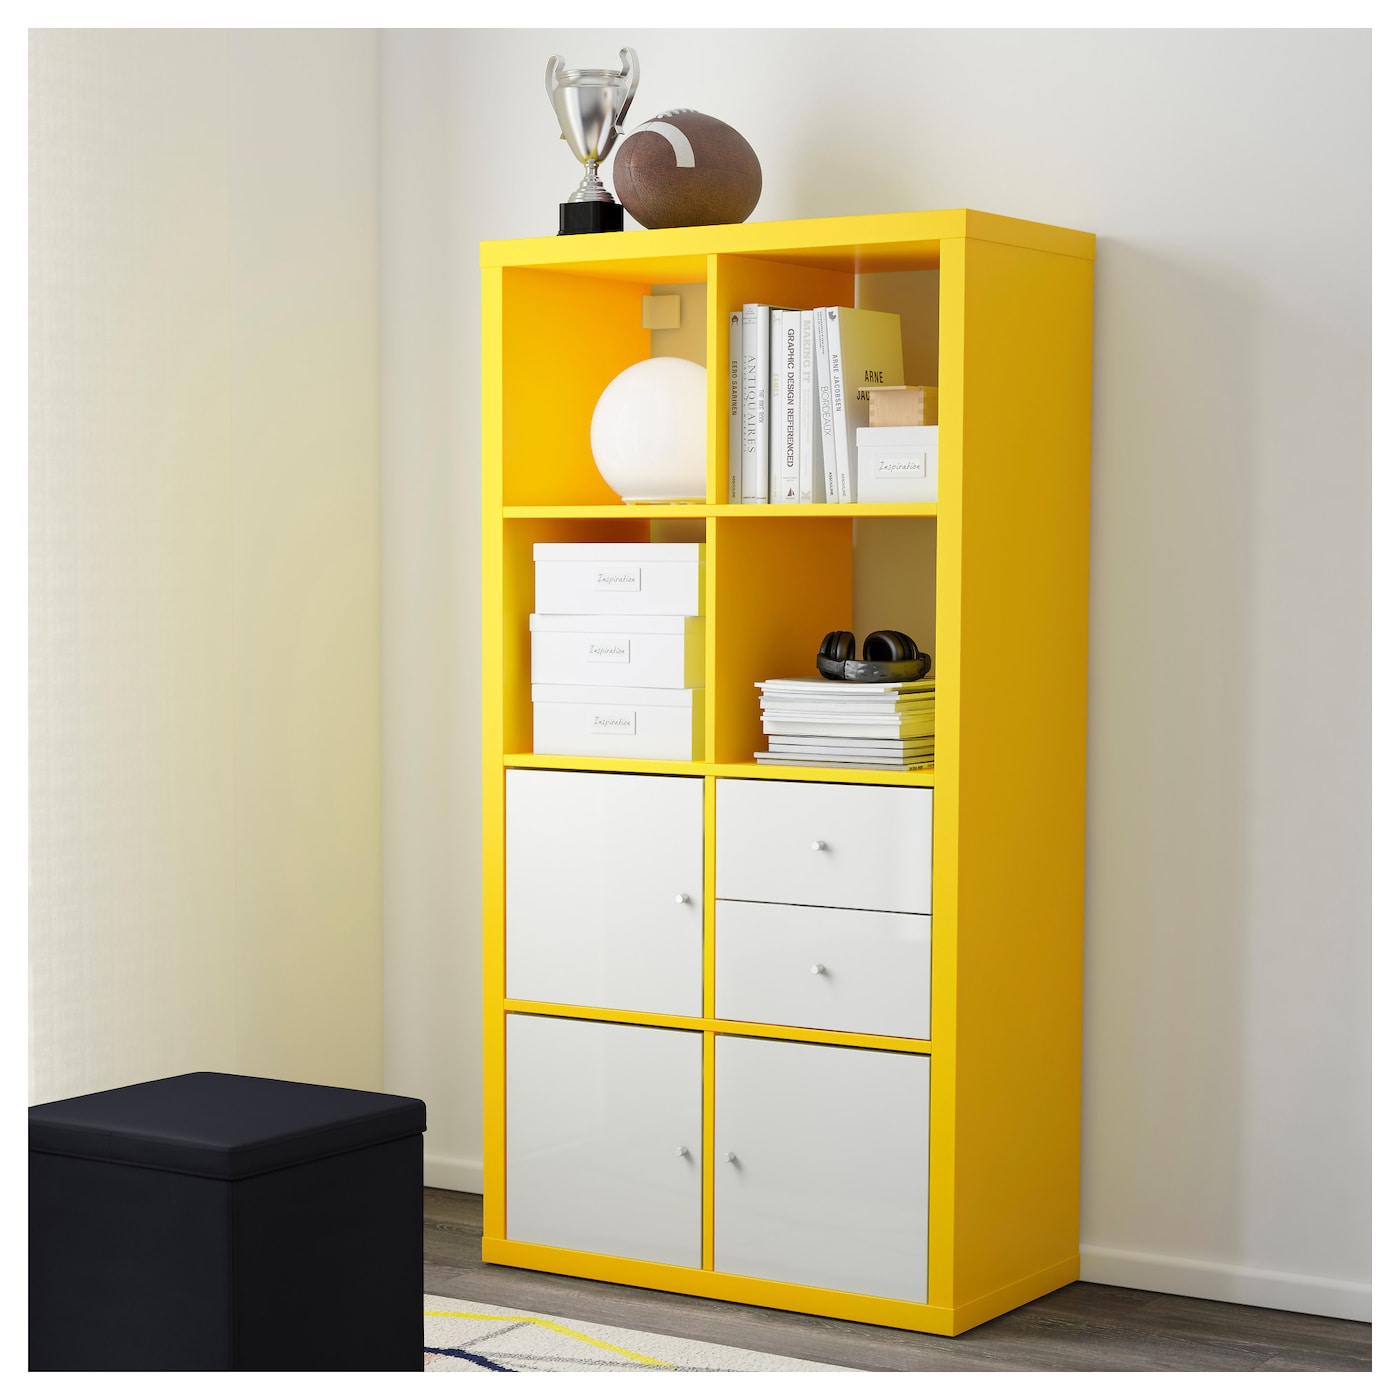 Kallax shelving unit yellow 77 x 147 cm ikea - Mobile ikea kallax ...